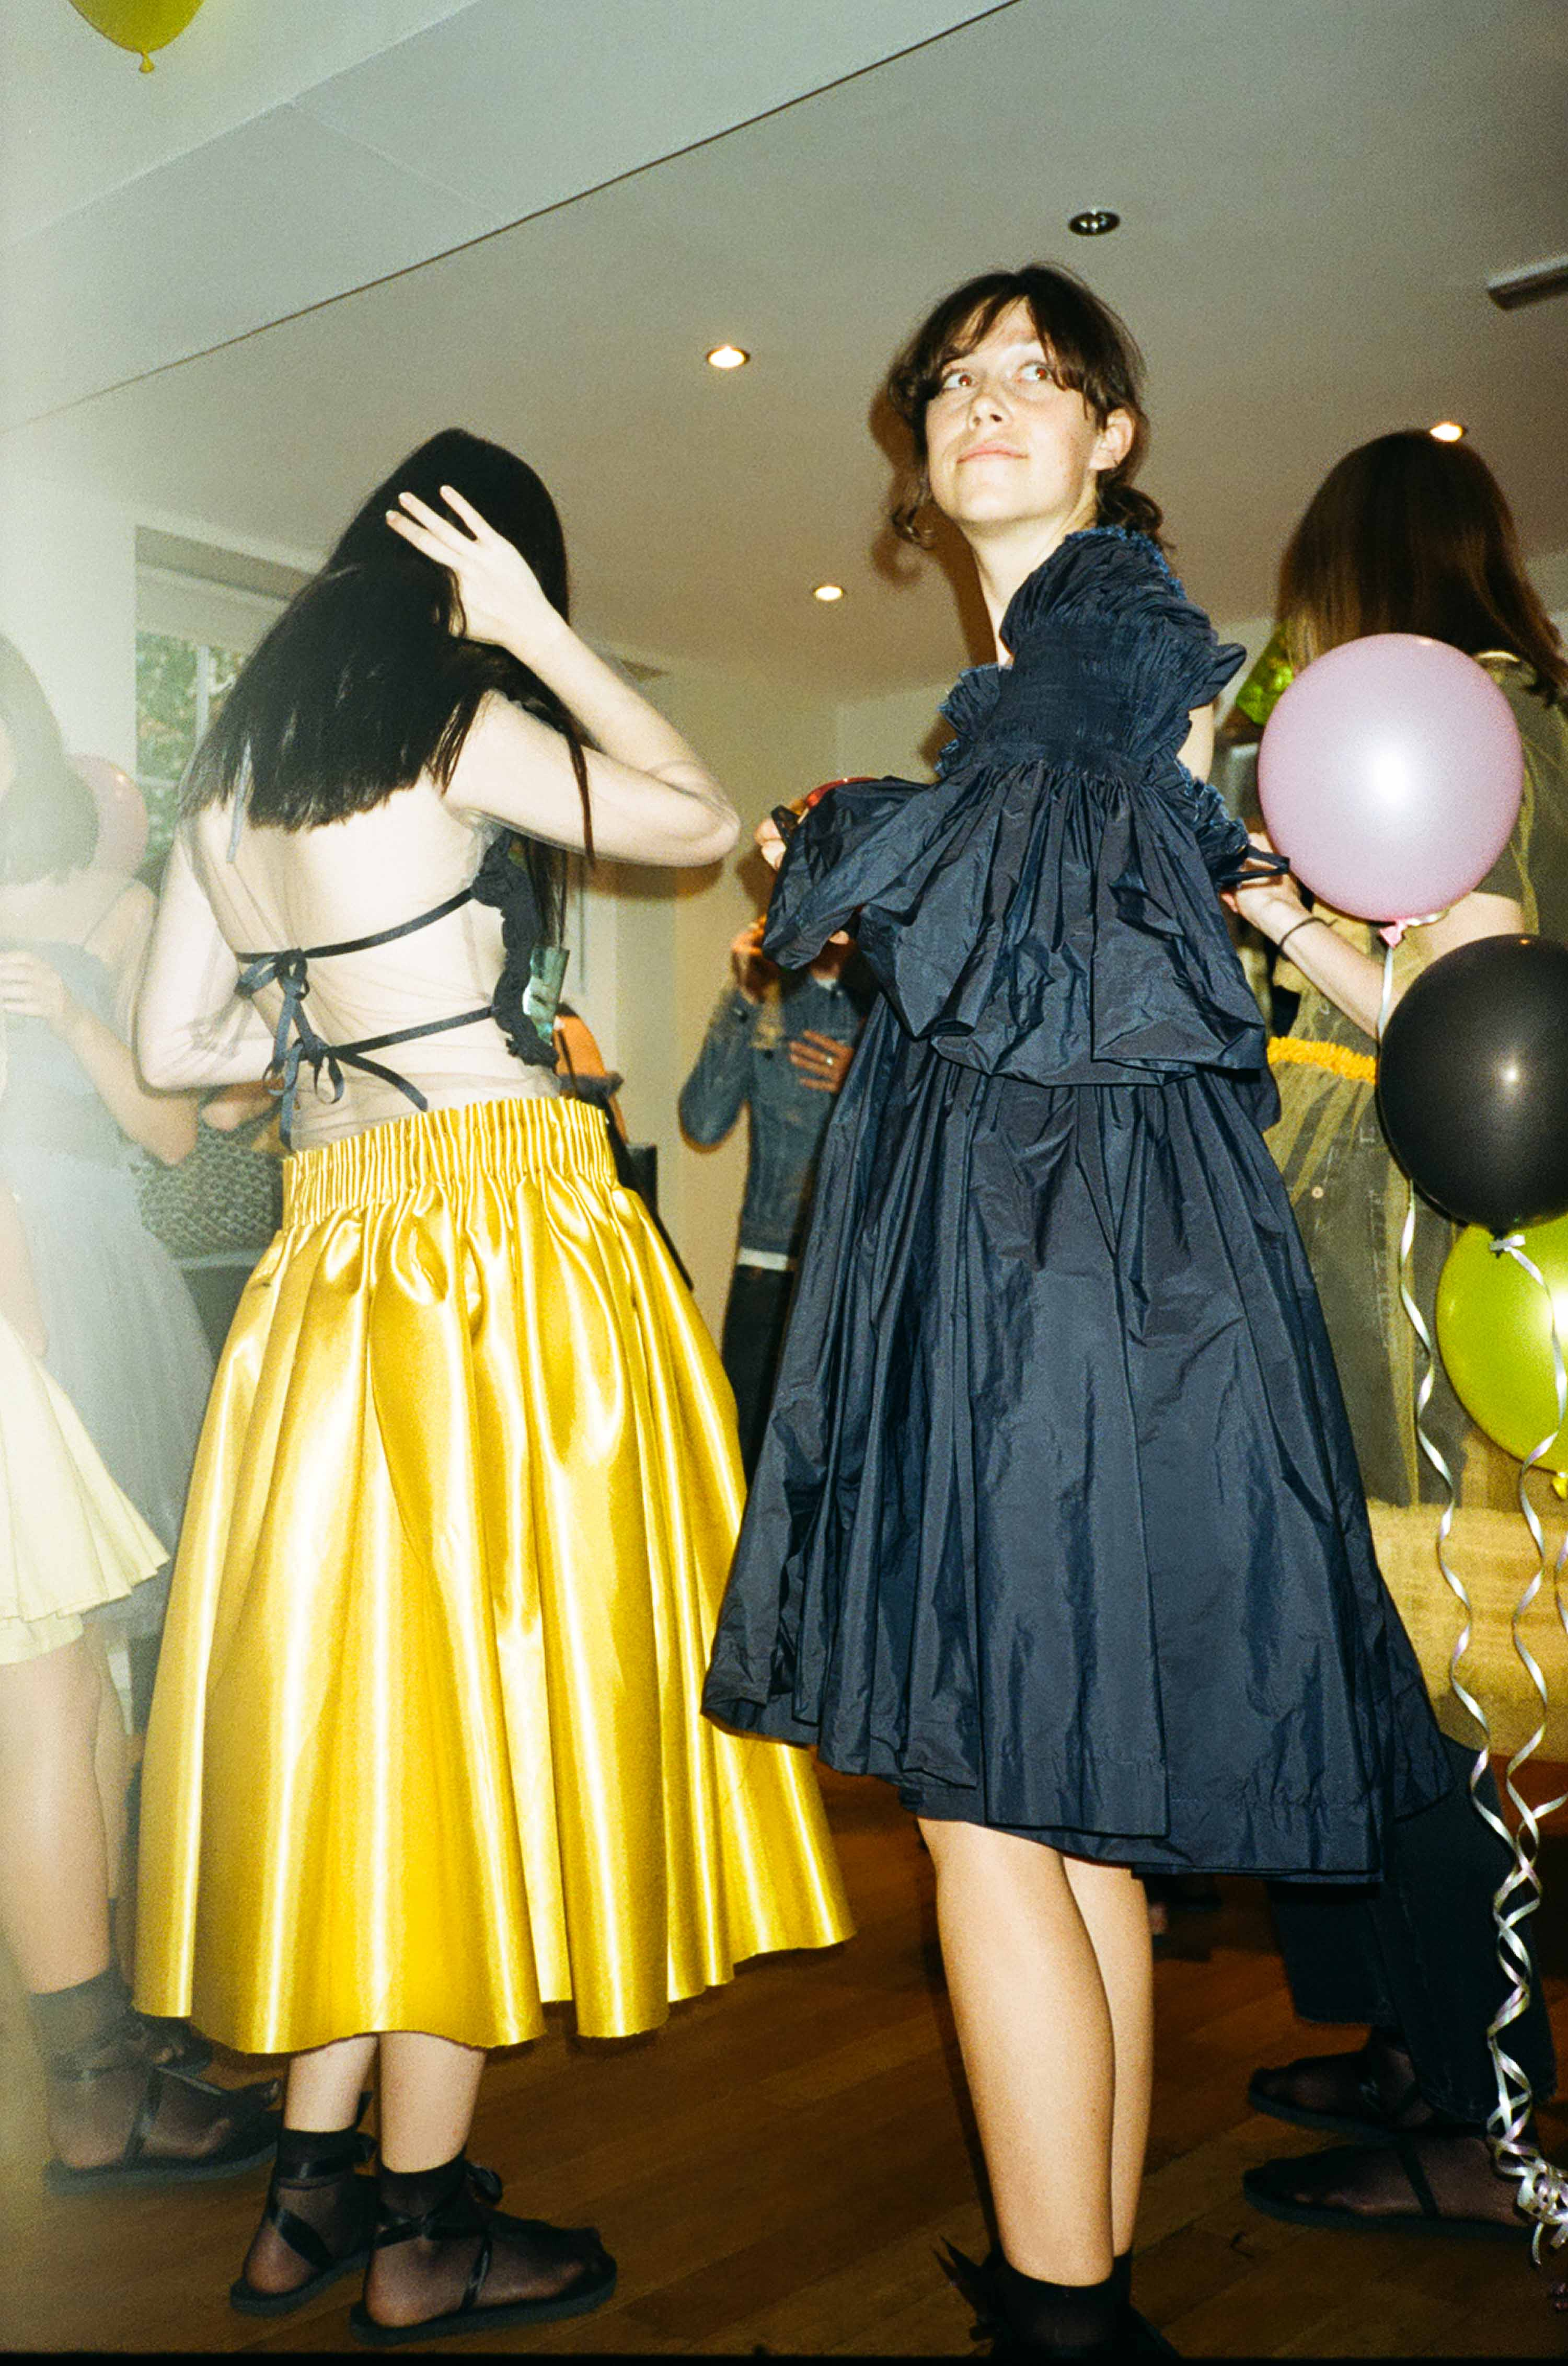 Molly Goddard makes Frilly Dresses